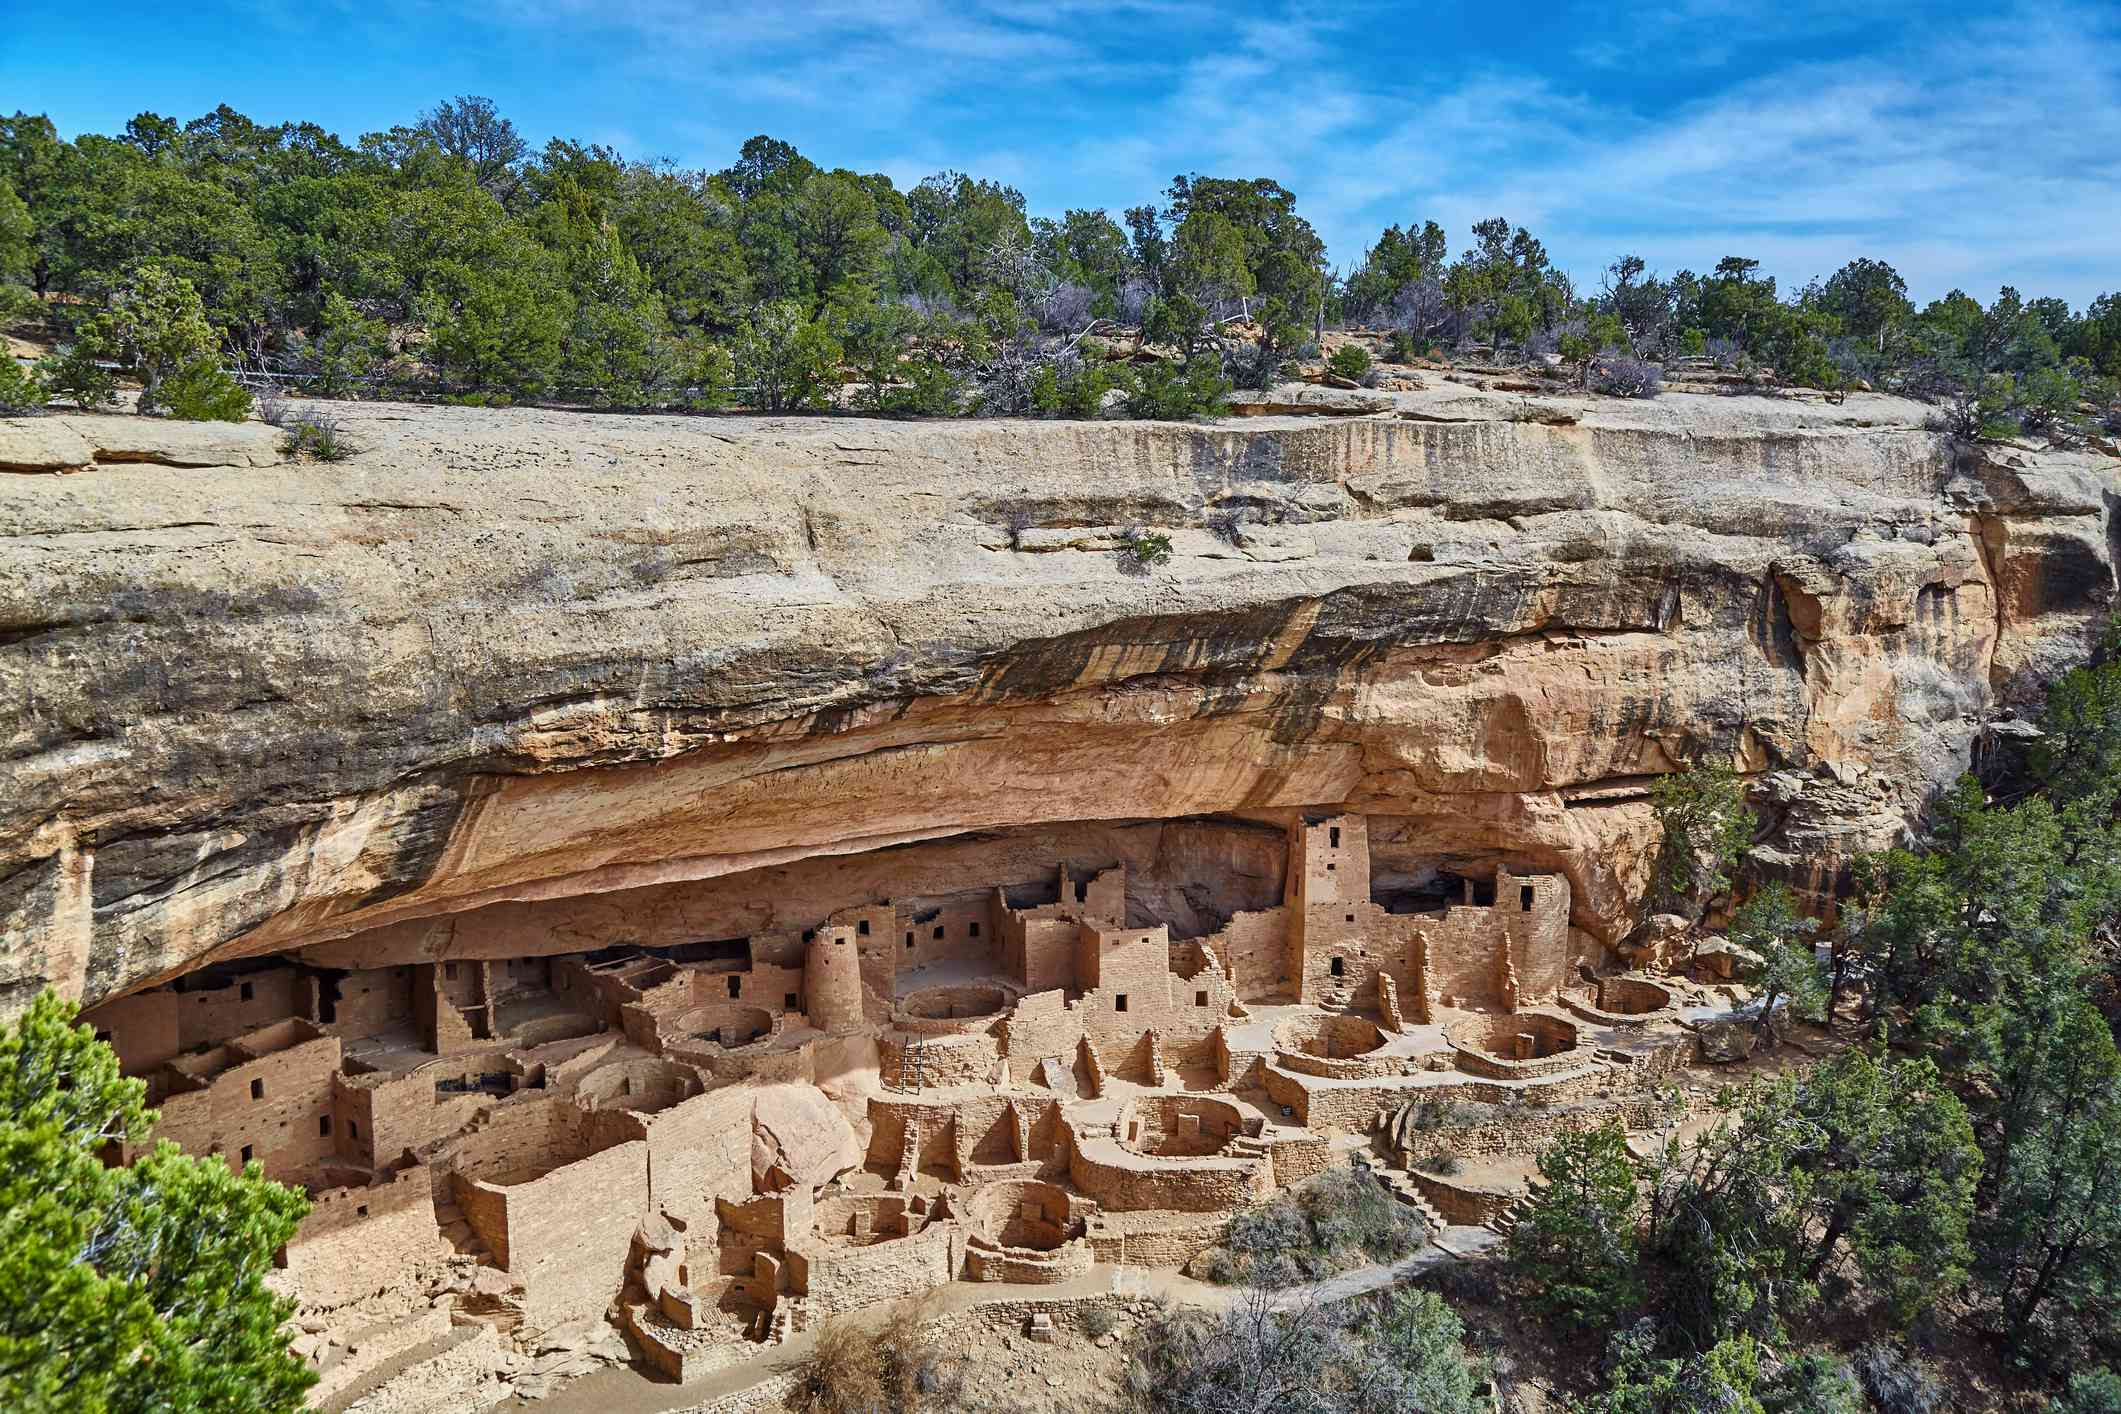 Aerial view of Mesa Verde cliff dwellings beneath a blue sky and tall green trees